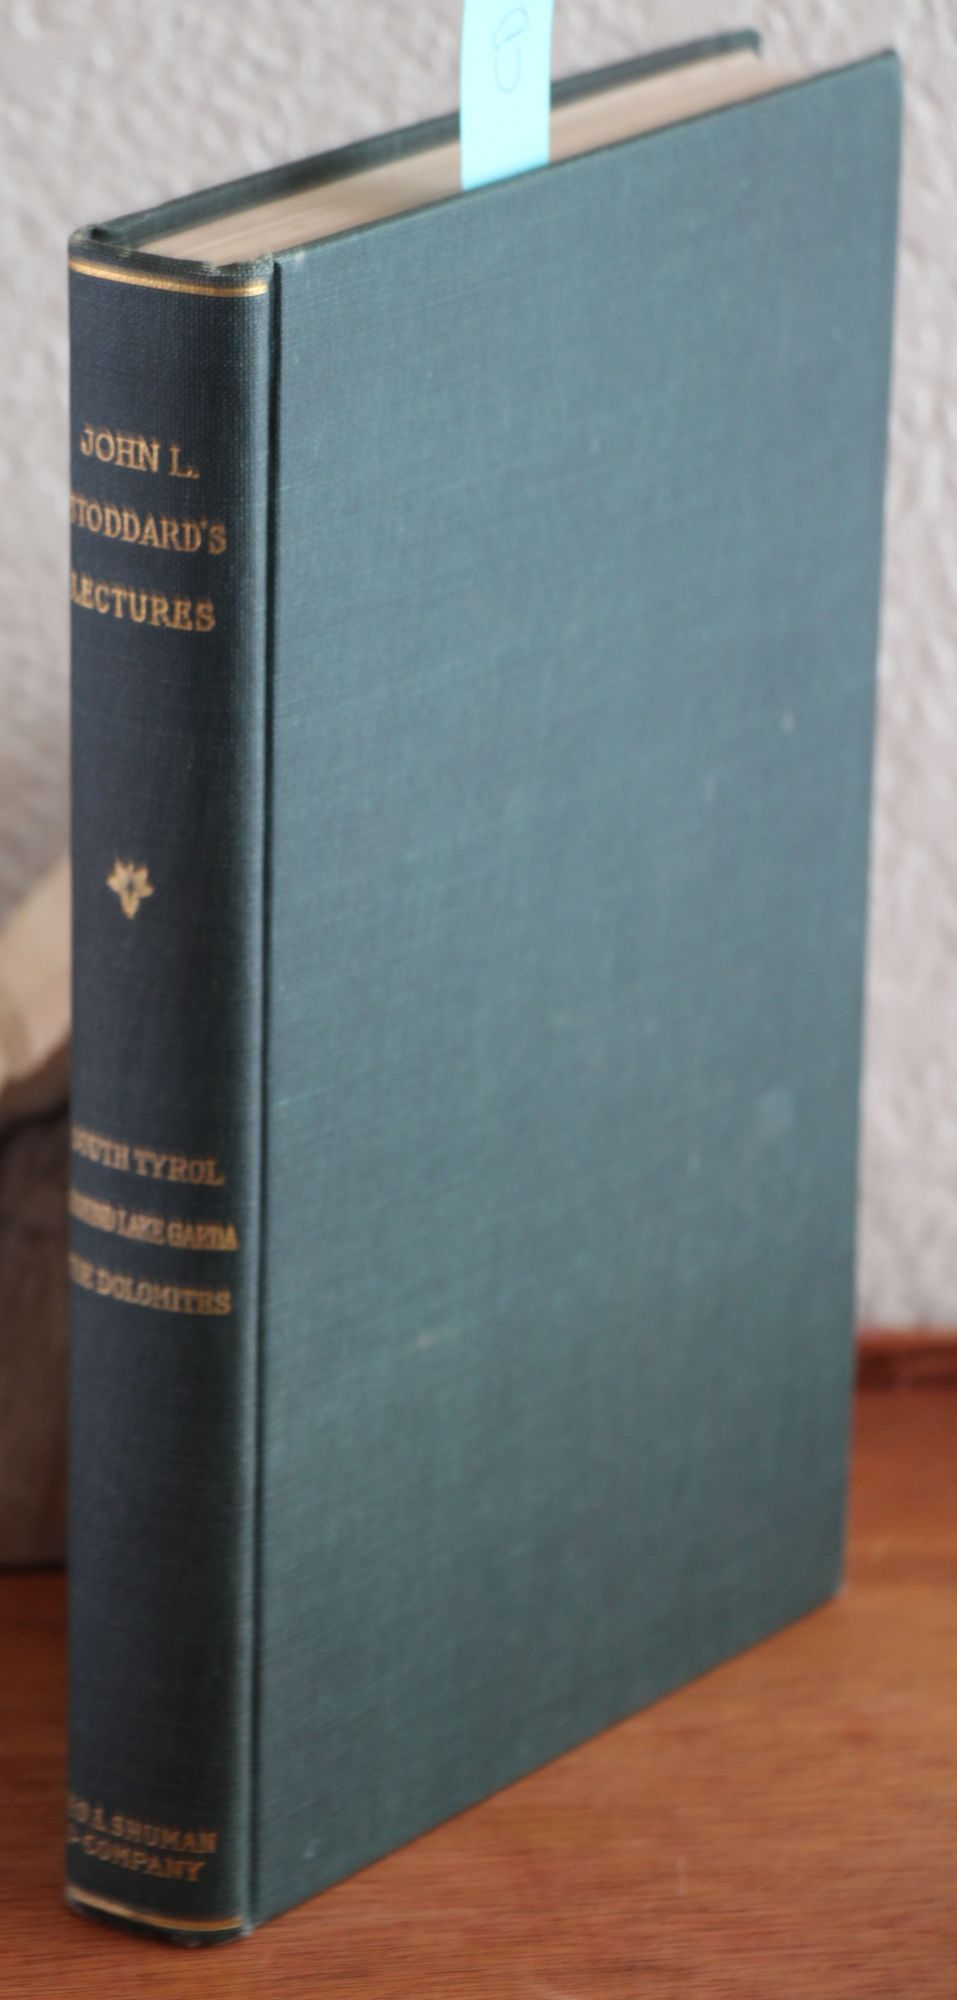 JOHN L. STODDARD'S LECTURES Supplementary Volume Number Three South Tyrol around Lake Garda the Dolomites